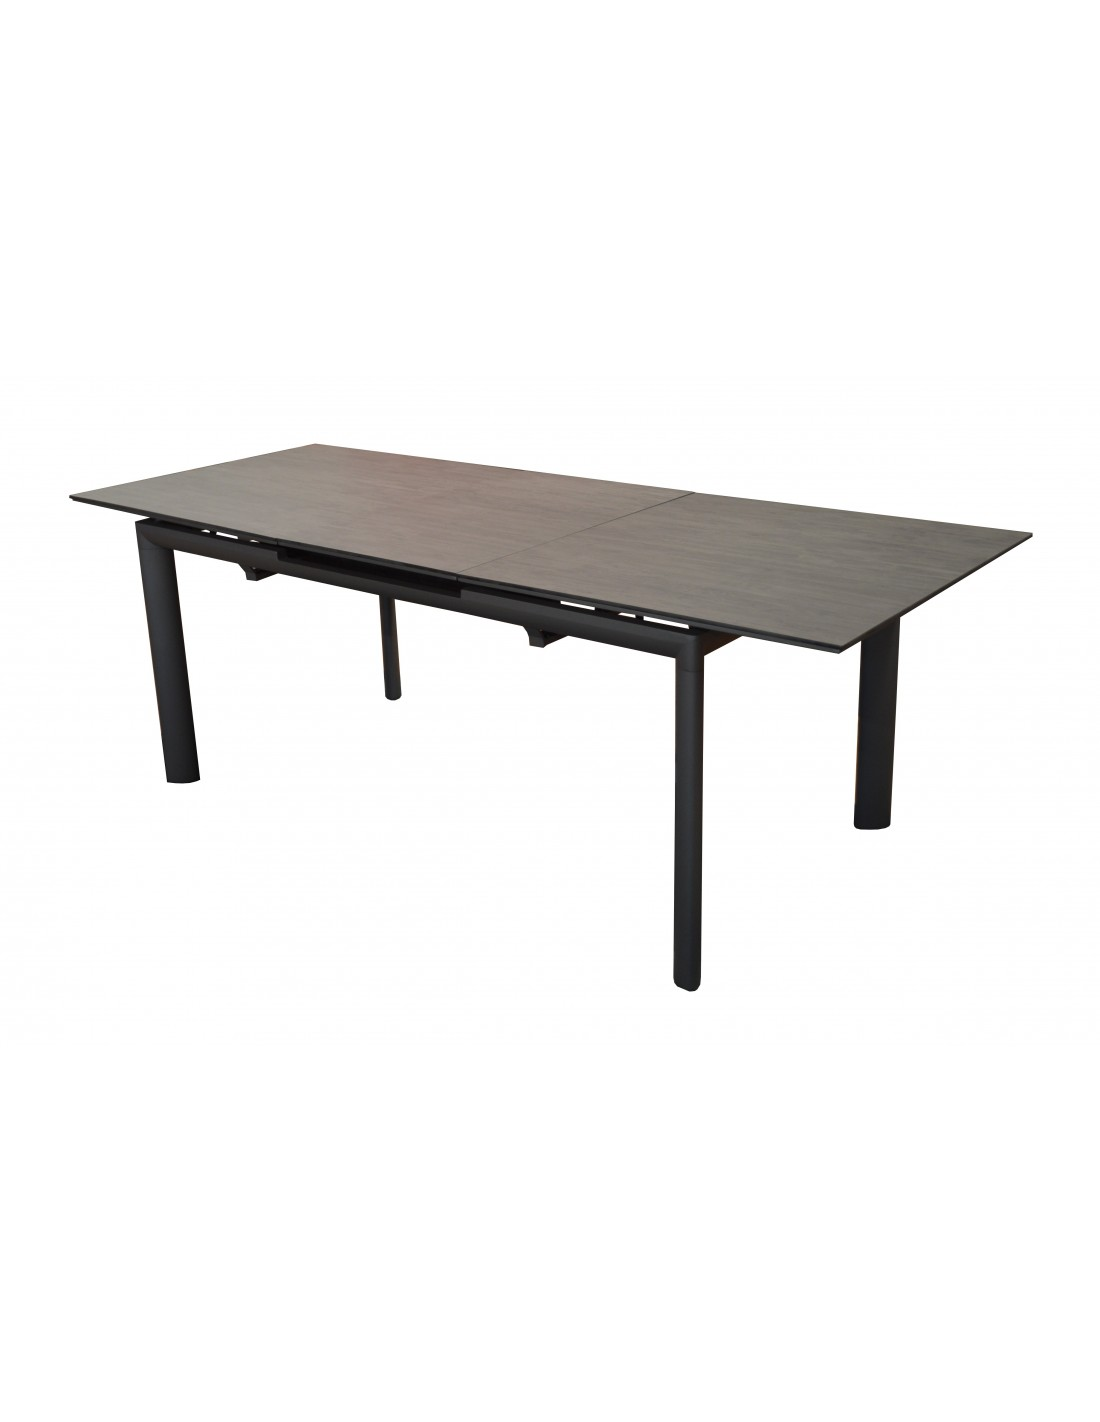 Table de jardin extensible hpl 84 images hegoa table for Plateau table extensible